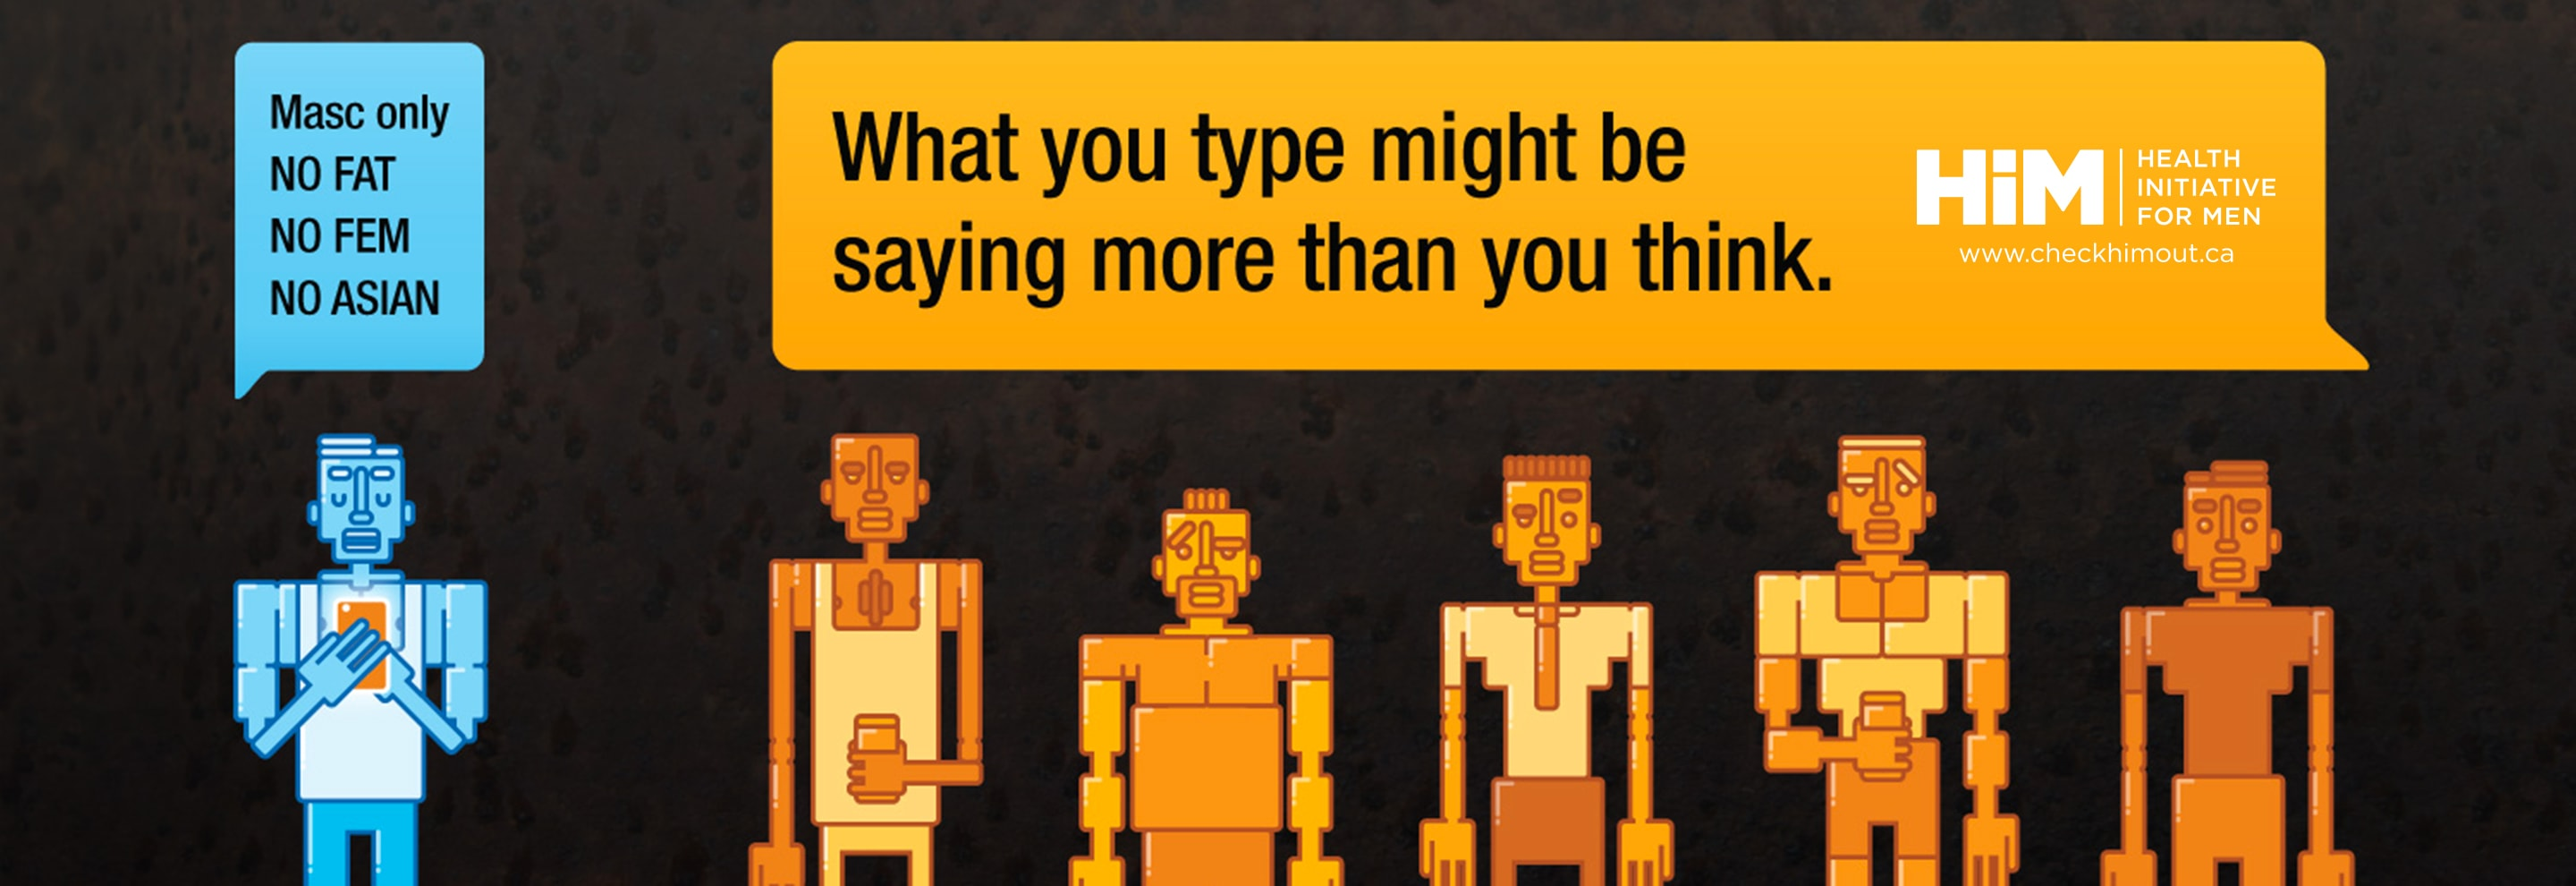 Think Before You Type - Health Initiative For Men - HIM